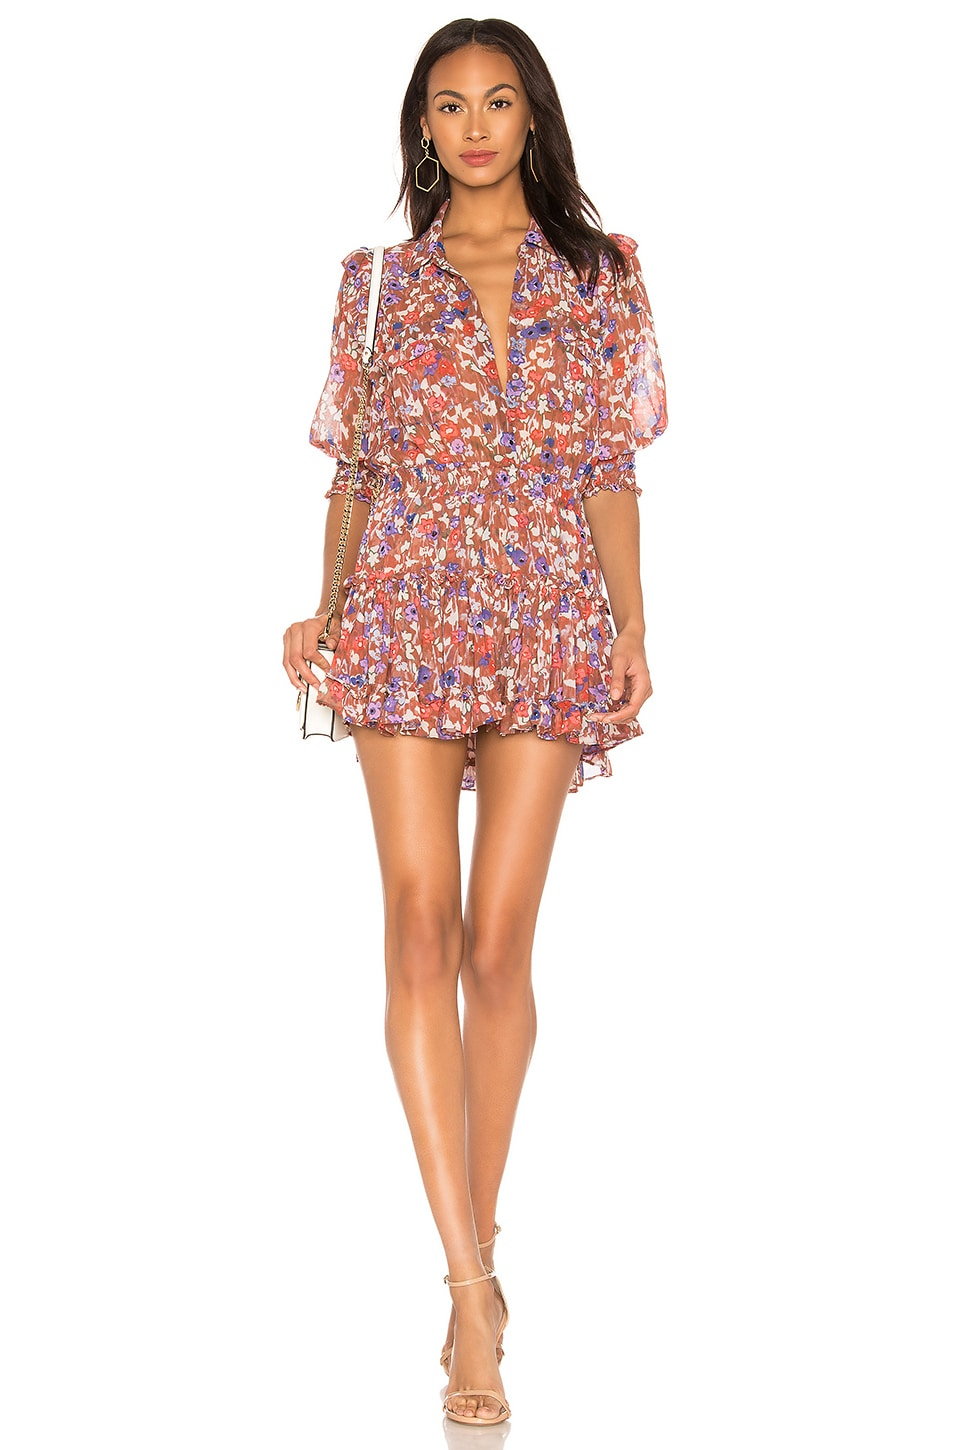 MISA Los Angeles X REVOLVE Lillian Dress in Brown Floral Print